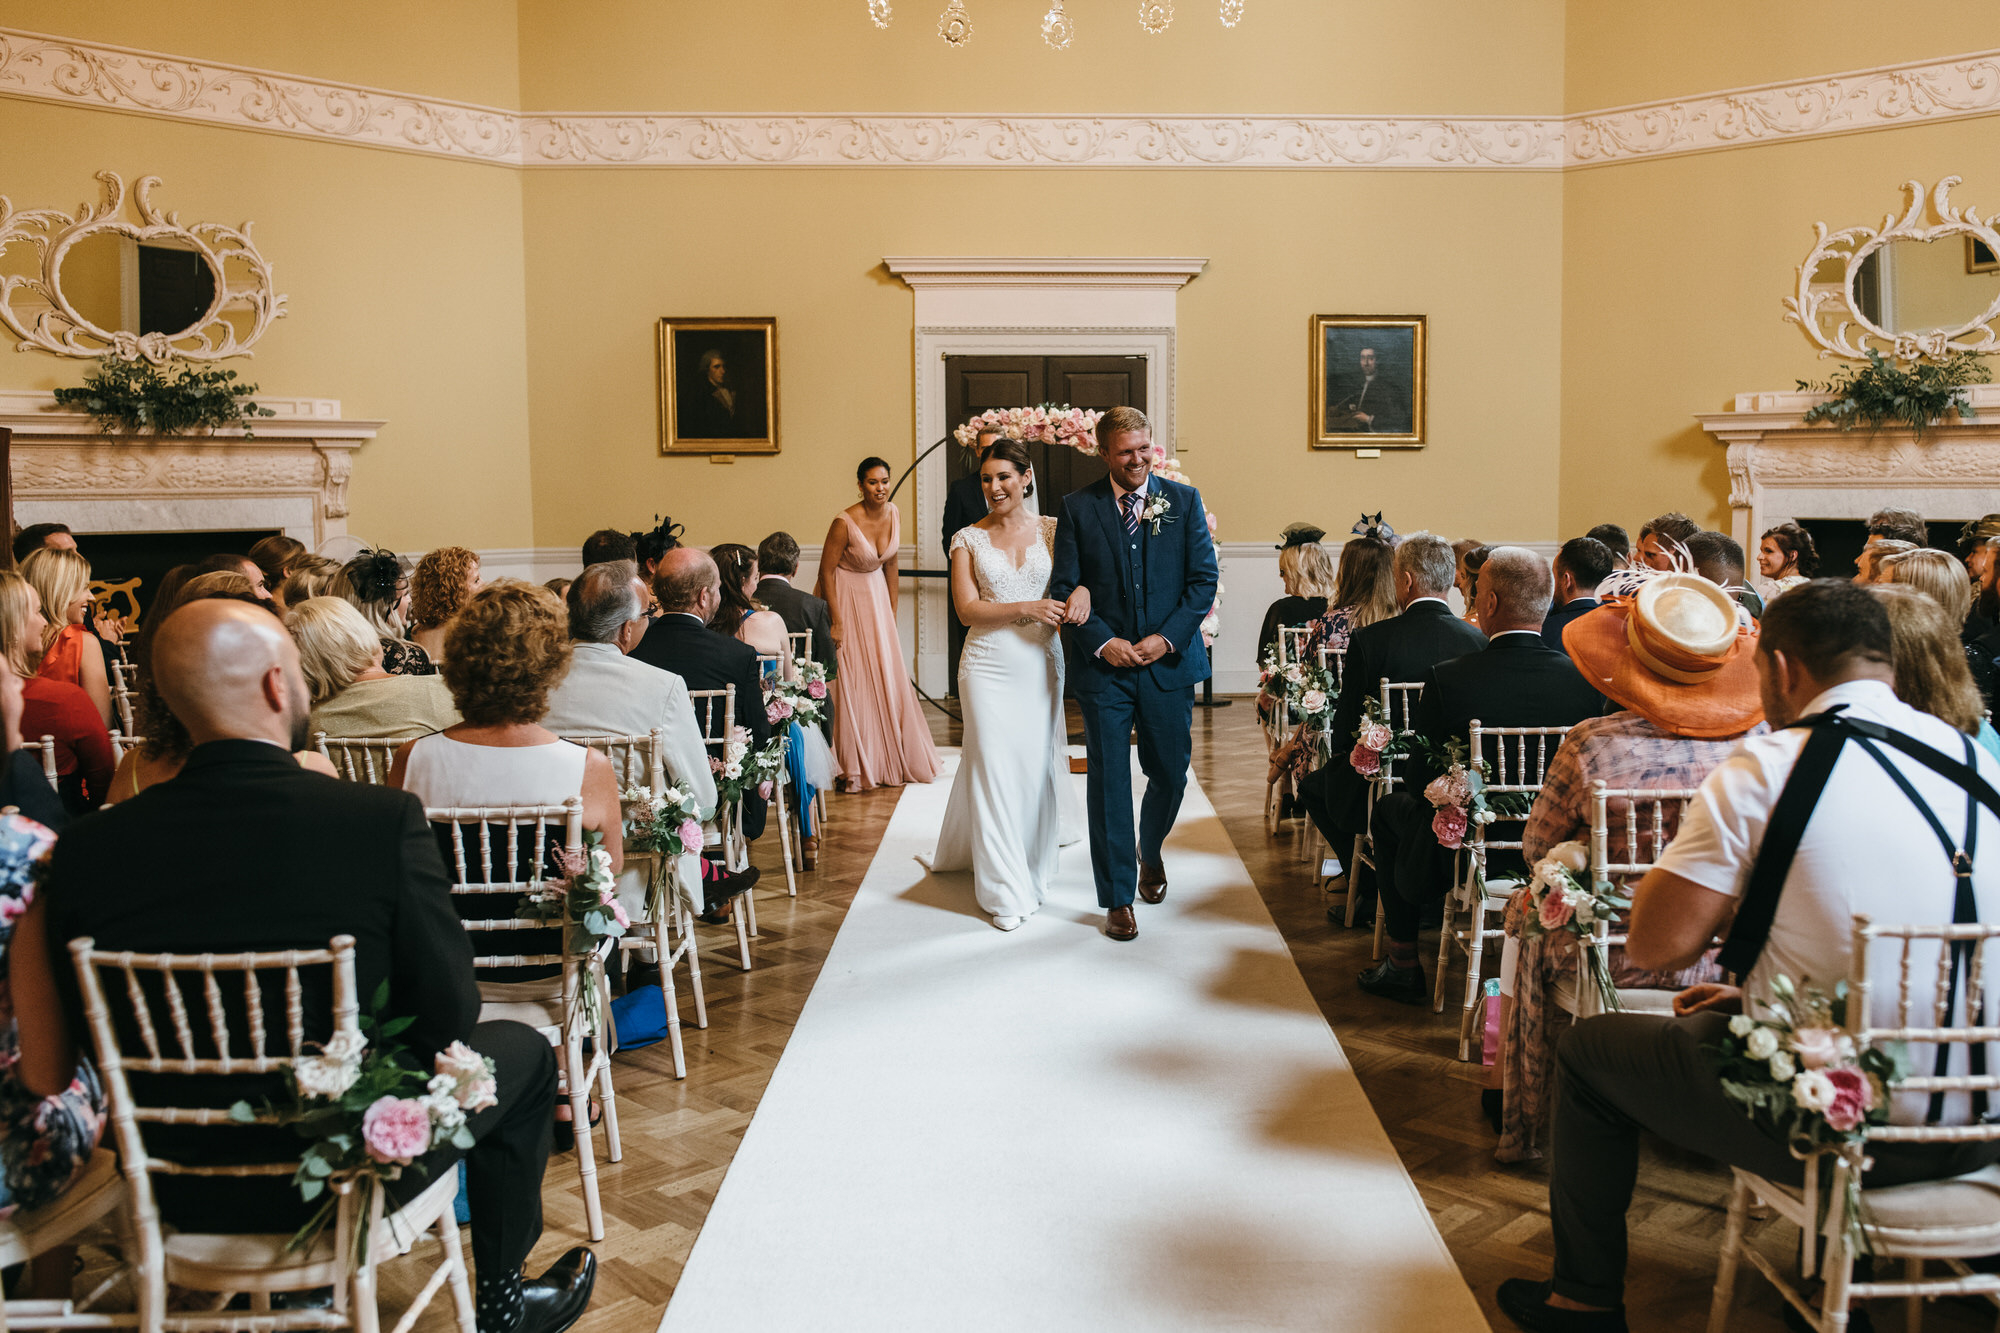 Assembly rooms bath wedding venue simon biffen photography 4